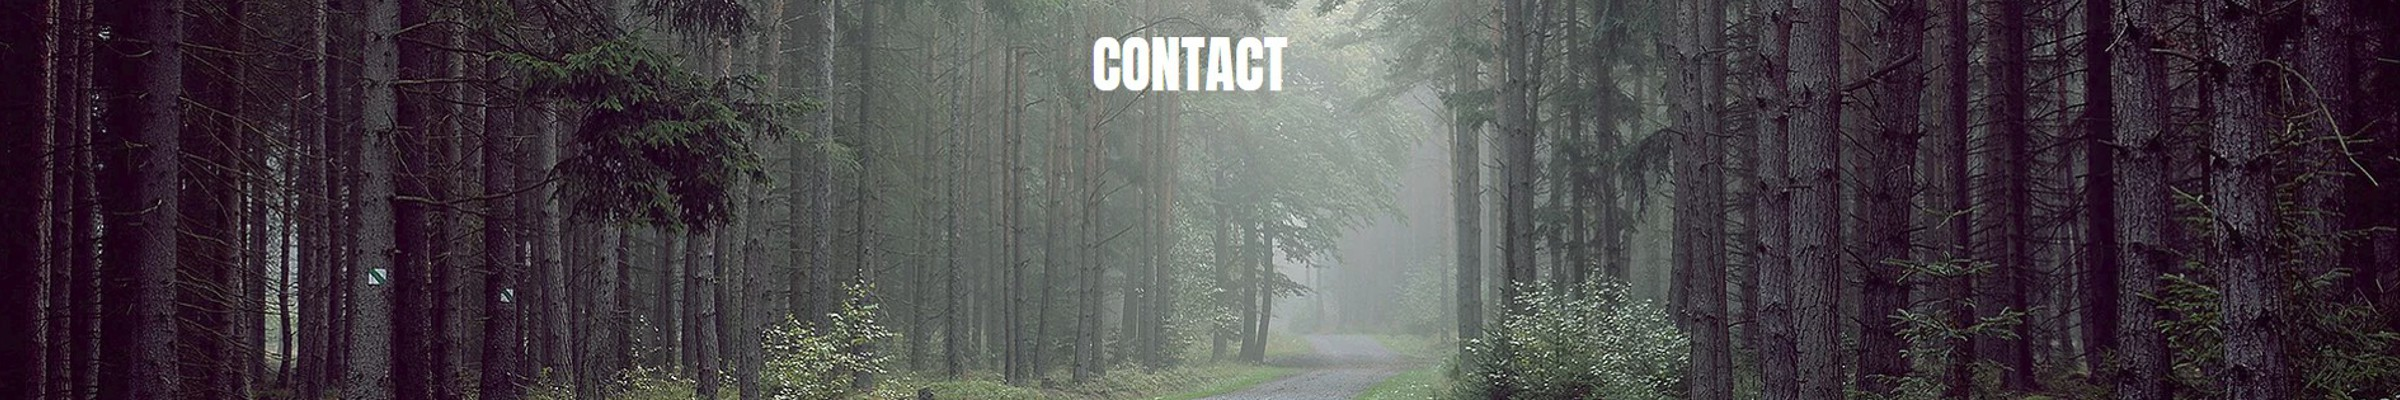 contact page header image - forest trail